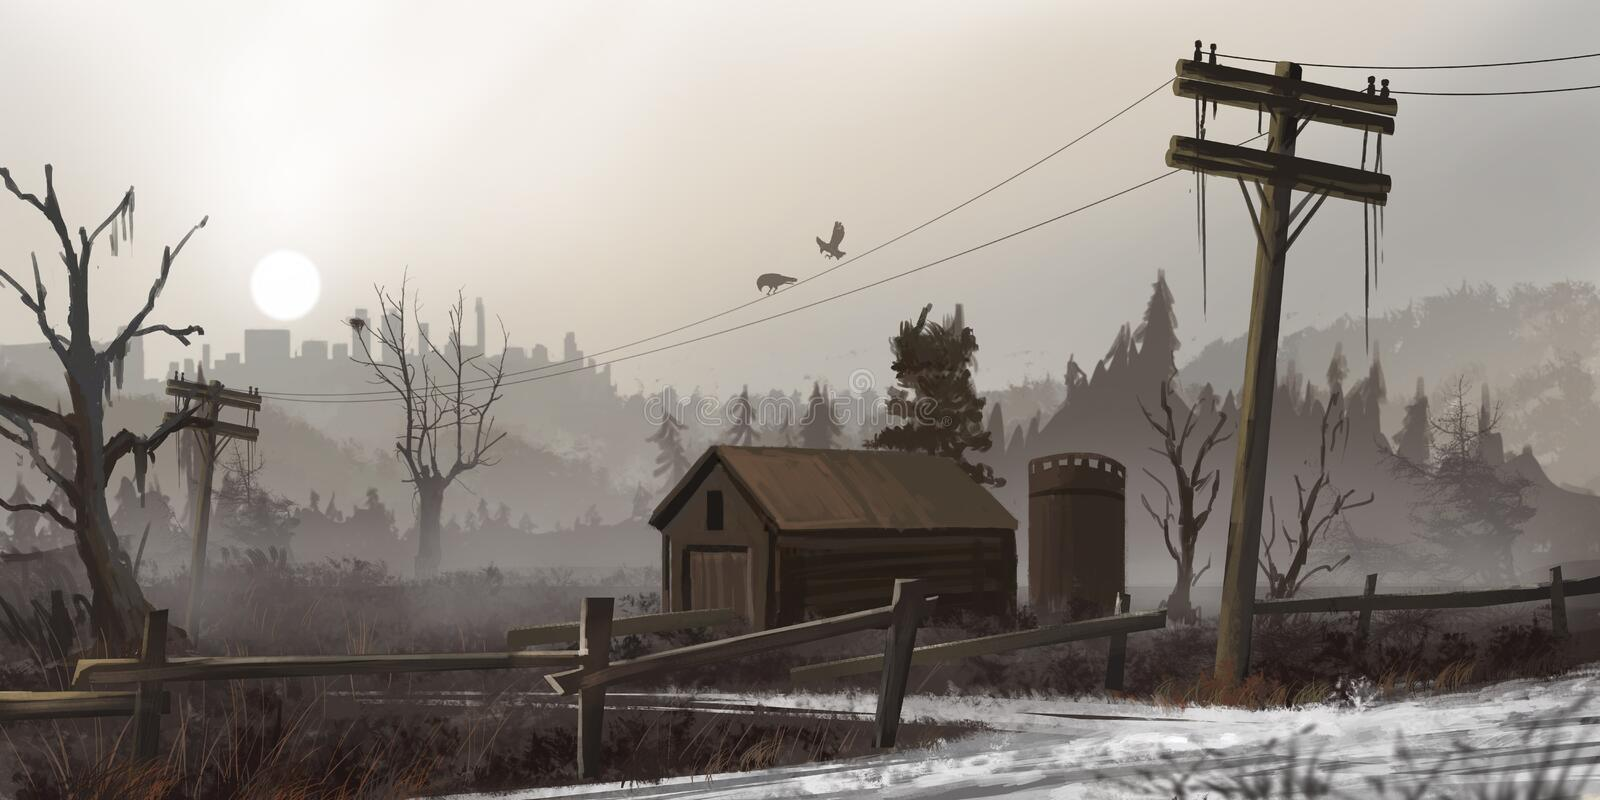 Abandoned House in the Dead Land. Fiction Backdrop. Concept Art. Realistic Illustration. Video Game Digital CG Artwork. Nature Scenery stock illustration